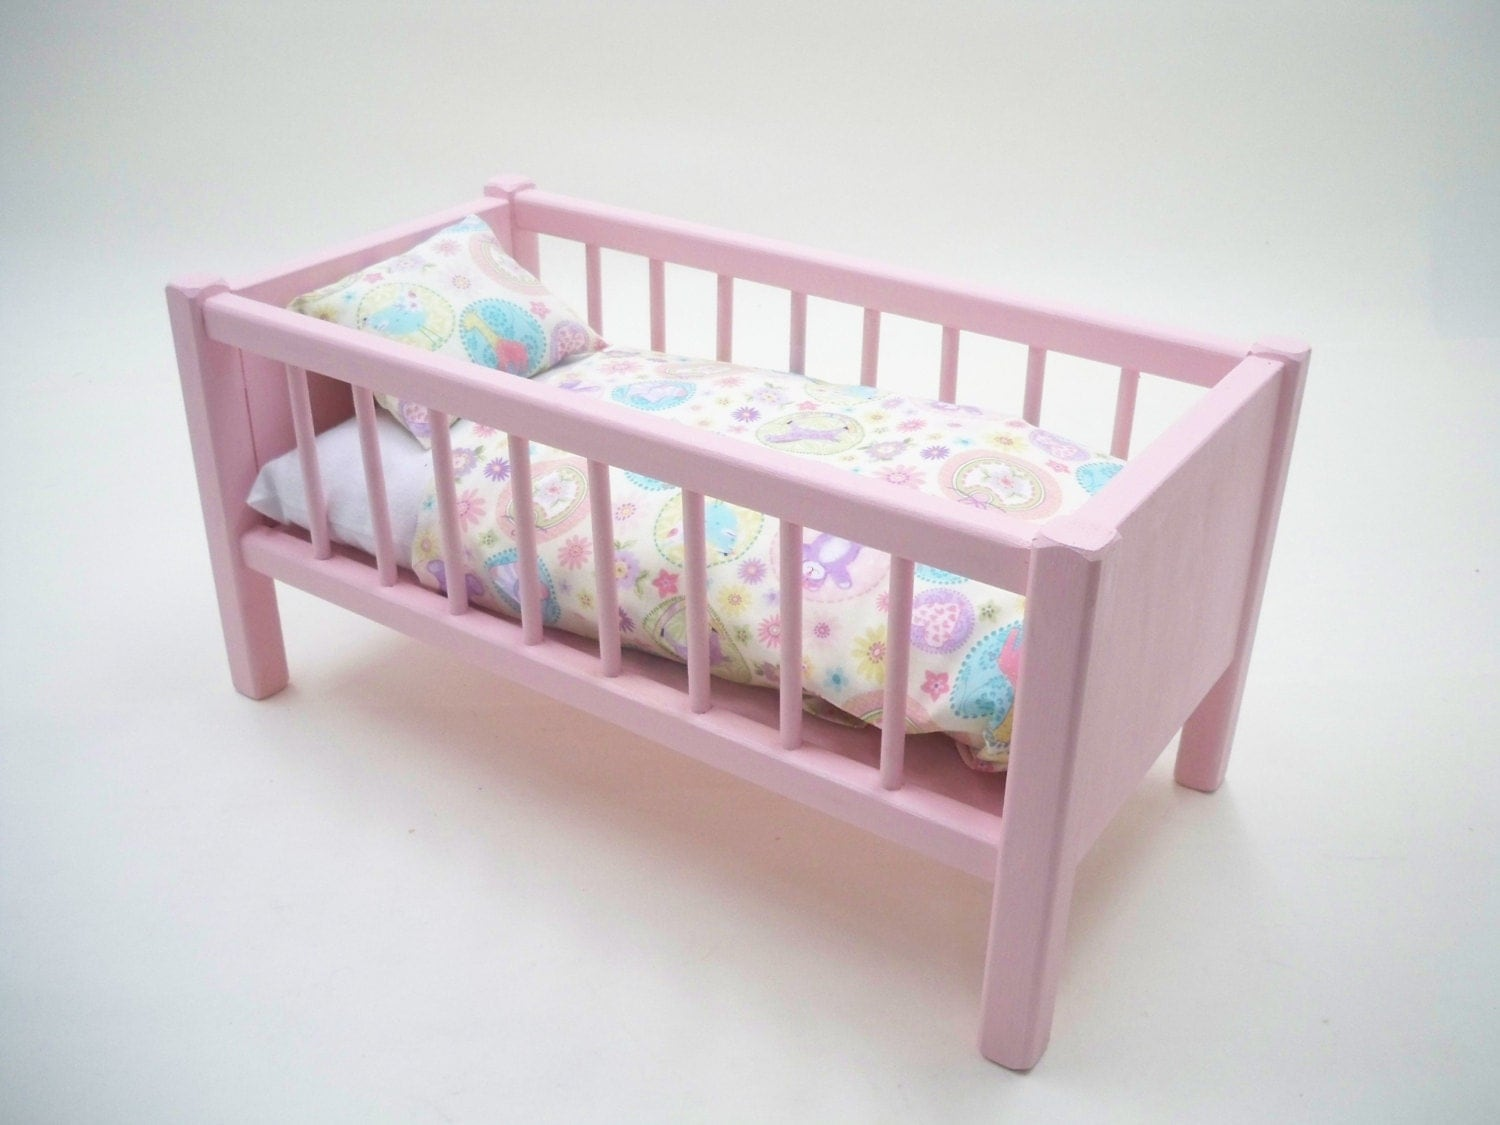 Wooden crib for babies - Wood Doll Bed Doll Bed American Doll Bed Doll Crib Girls Toy 18inch Doll Bed Baby Doll Crib Baby Doll Bed